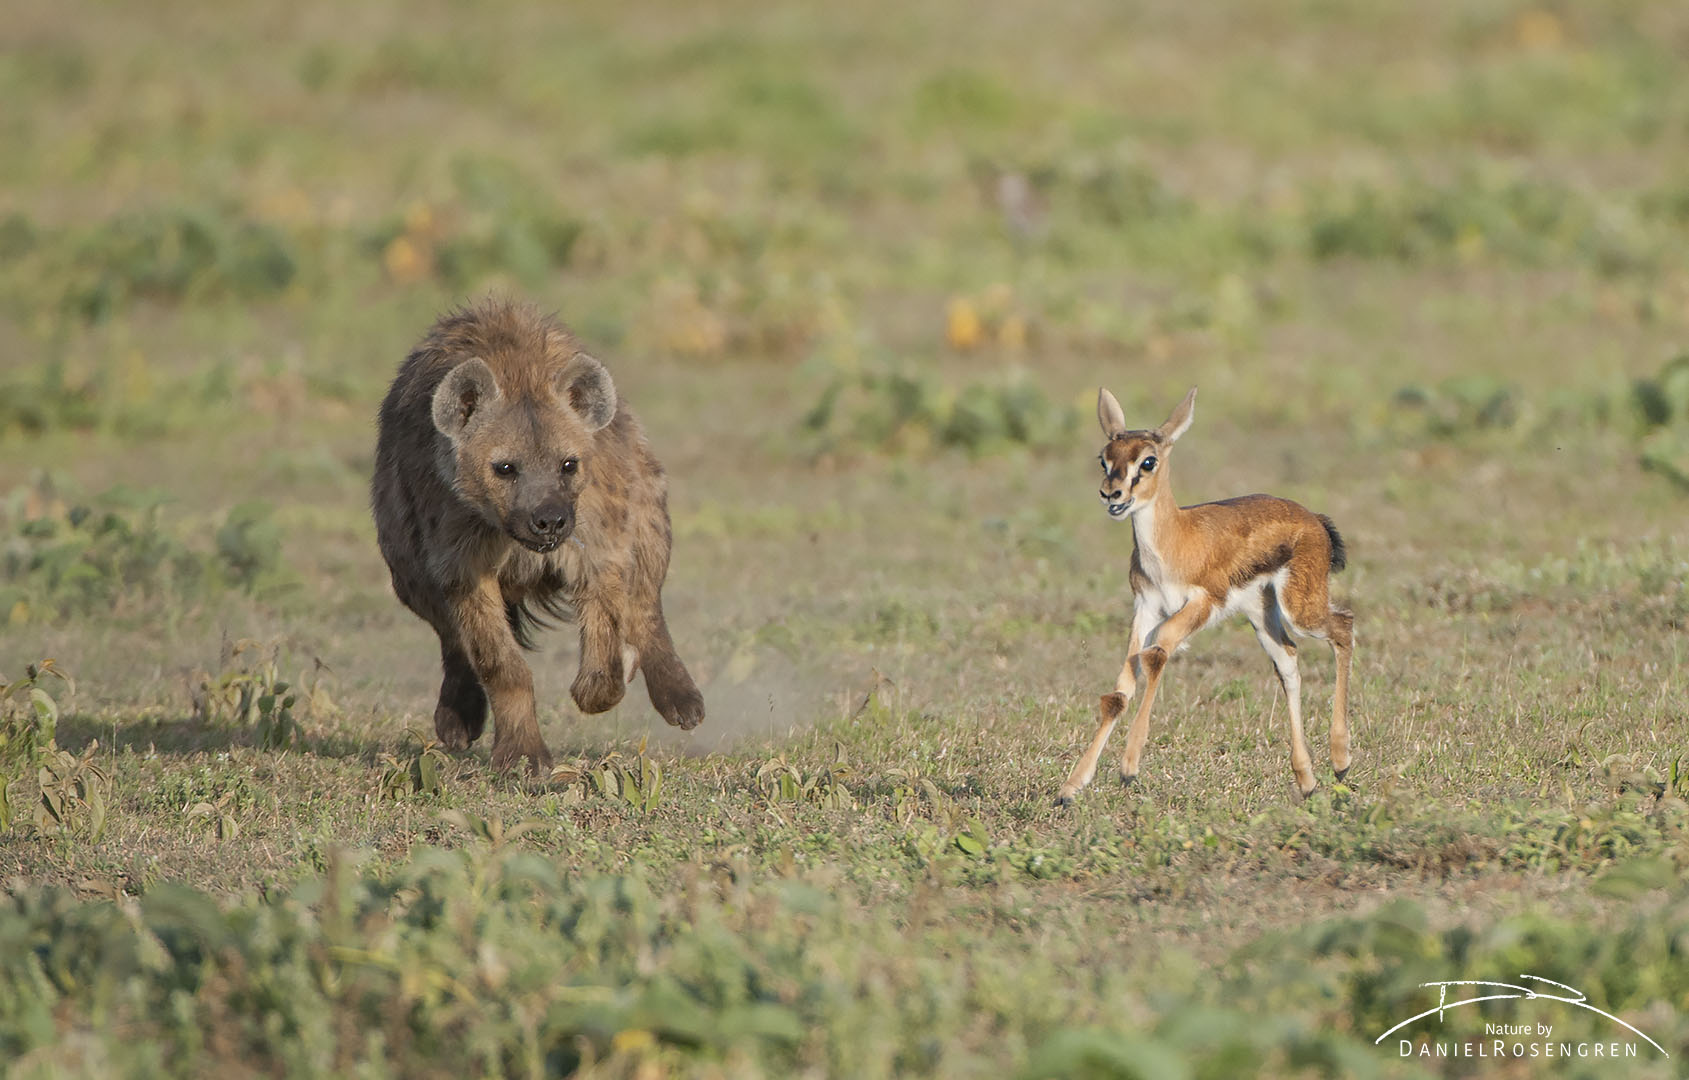 A Spotted hyena chasing a young Thomson's gazelle. © Daniel Rosengren